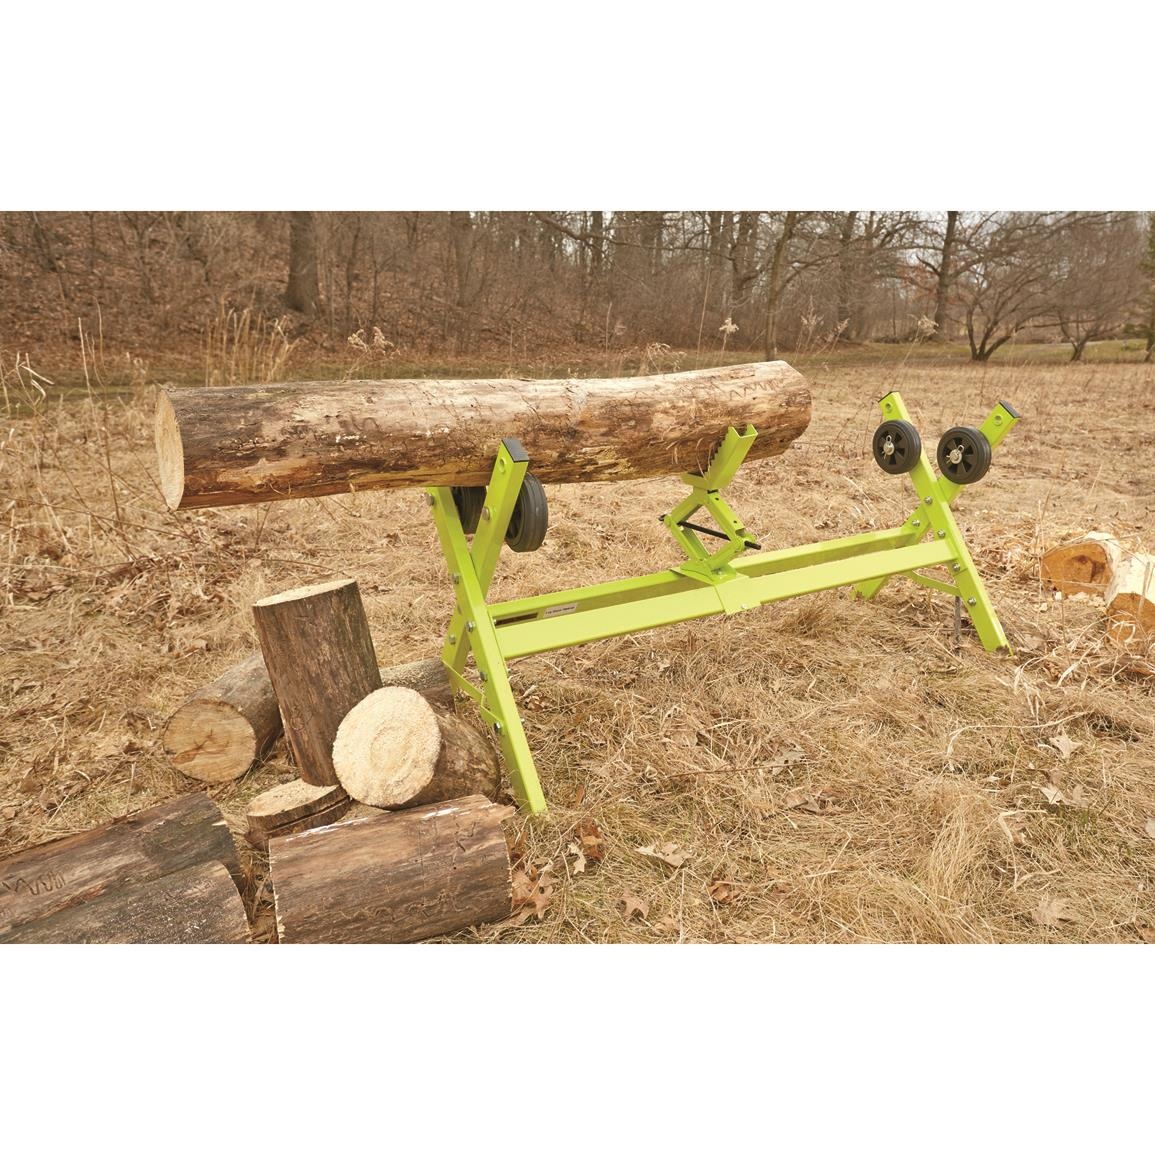 V-shaped log cradle to secure various logs